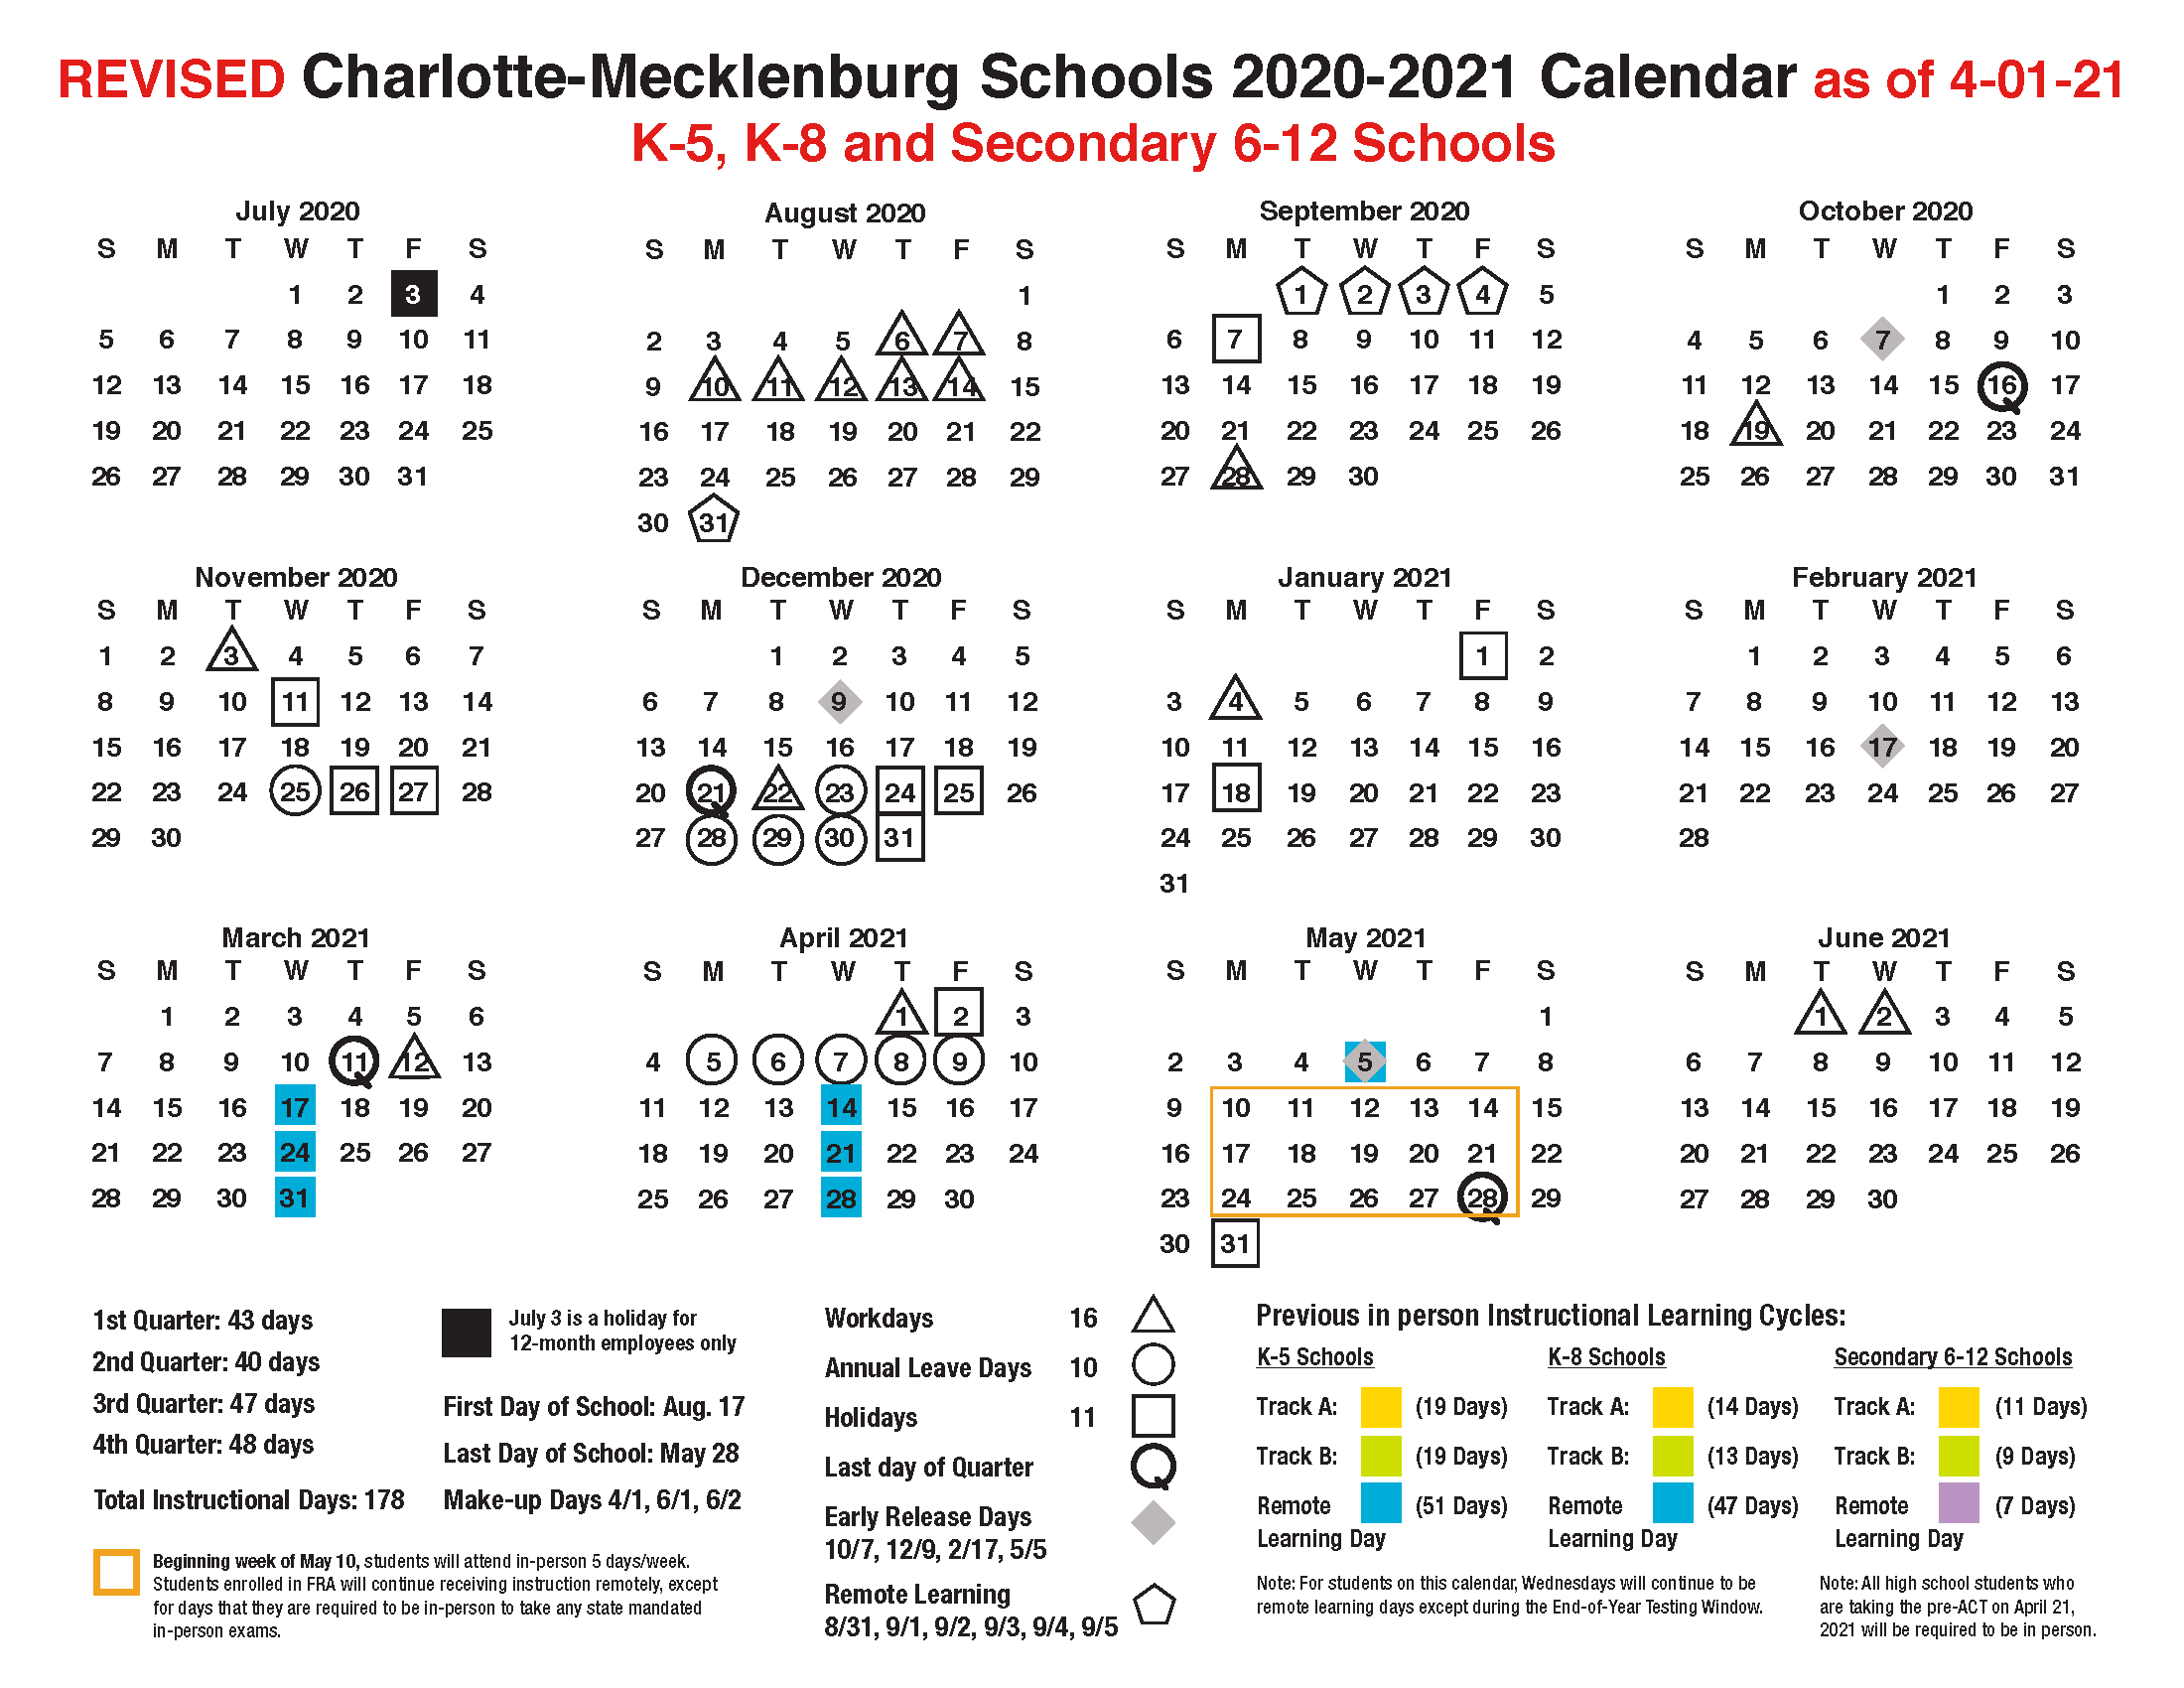 2020-2021 K-5, K-8, and Secondary 6-12 Academic Calendar (Revised 4-1-21).png